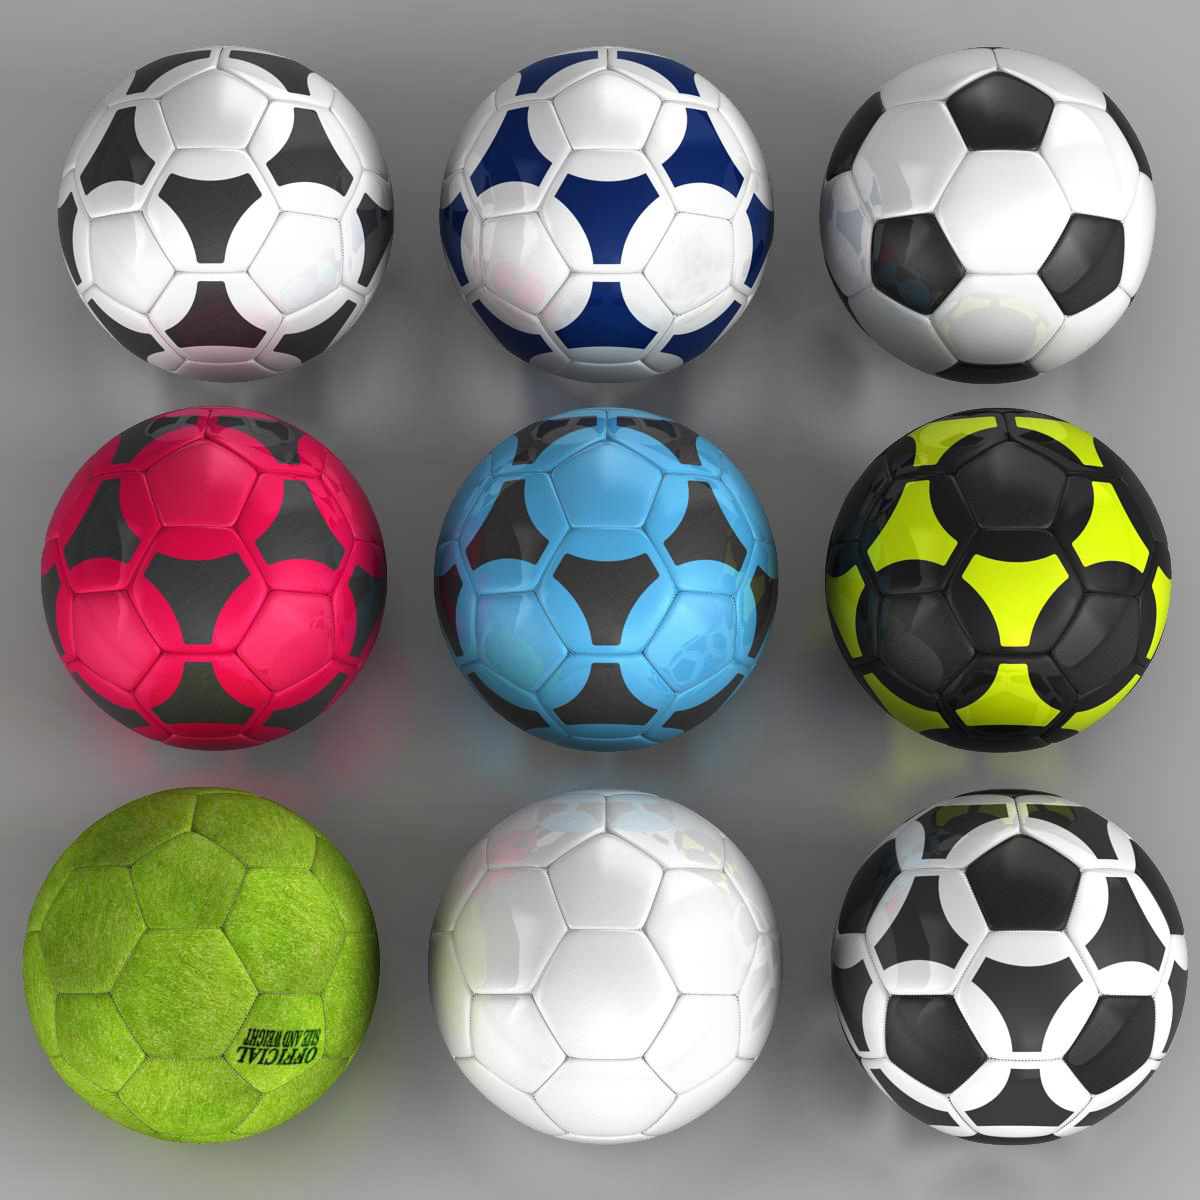 set soccerball Model 3d 3ds max fbx c4d am mb obj 205436